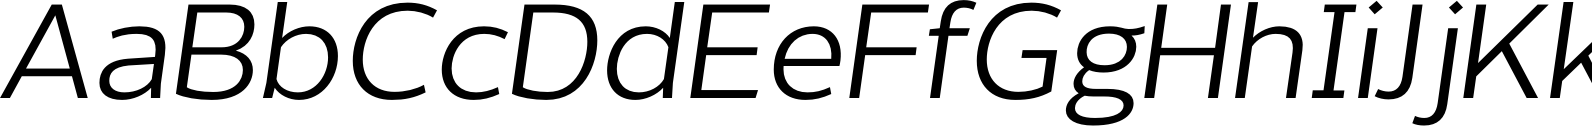 Without Sans Regular Italic Font